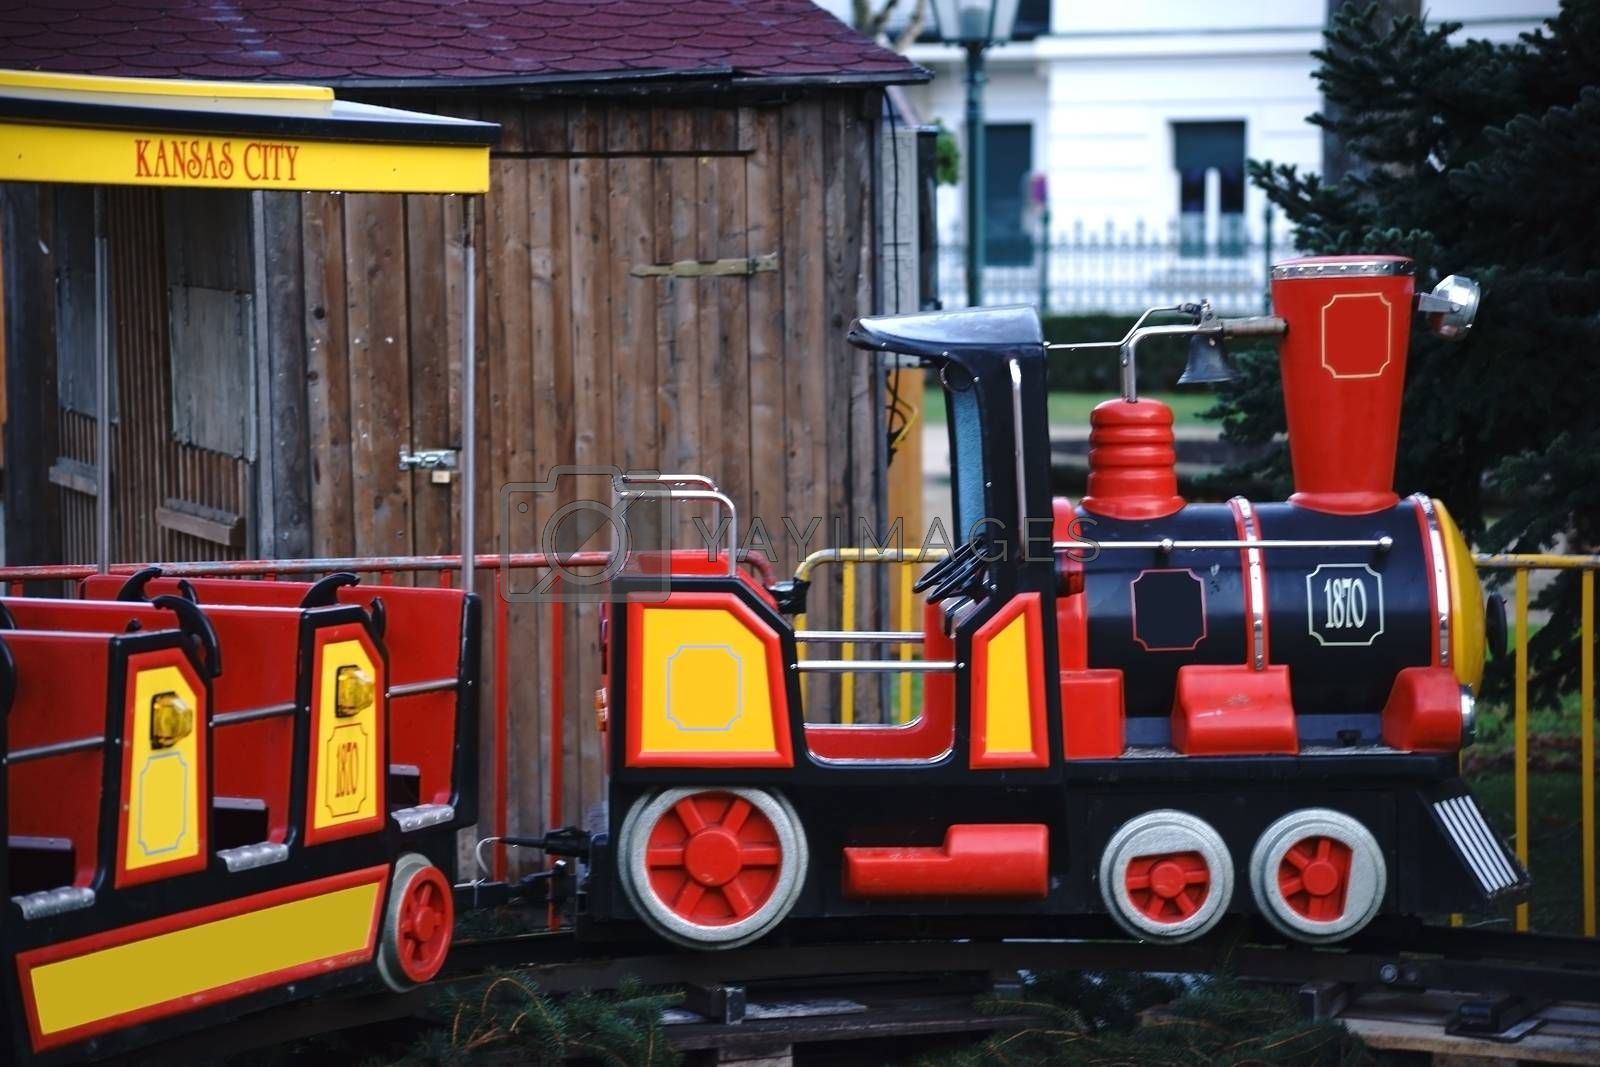 A children's carousel on a Christmas market with rails and a locomotive.